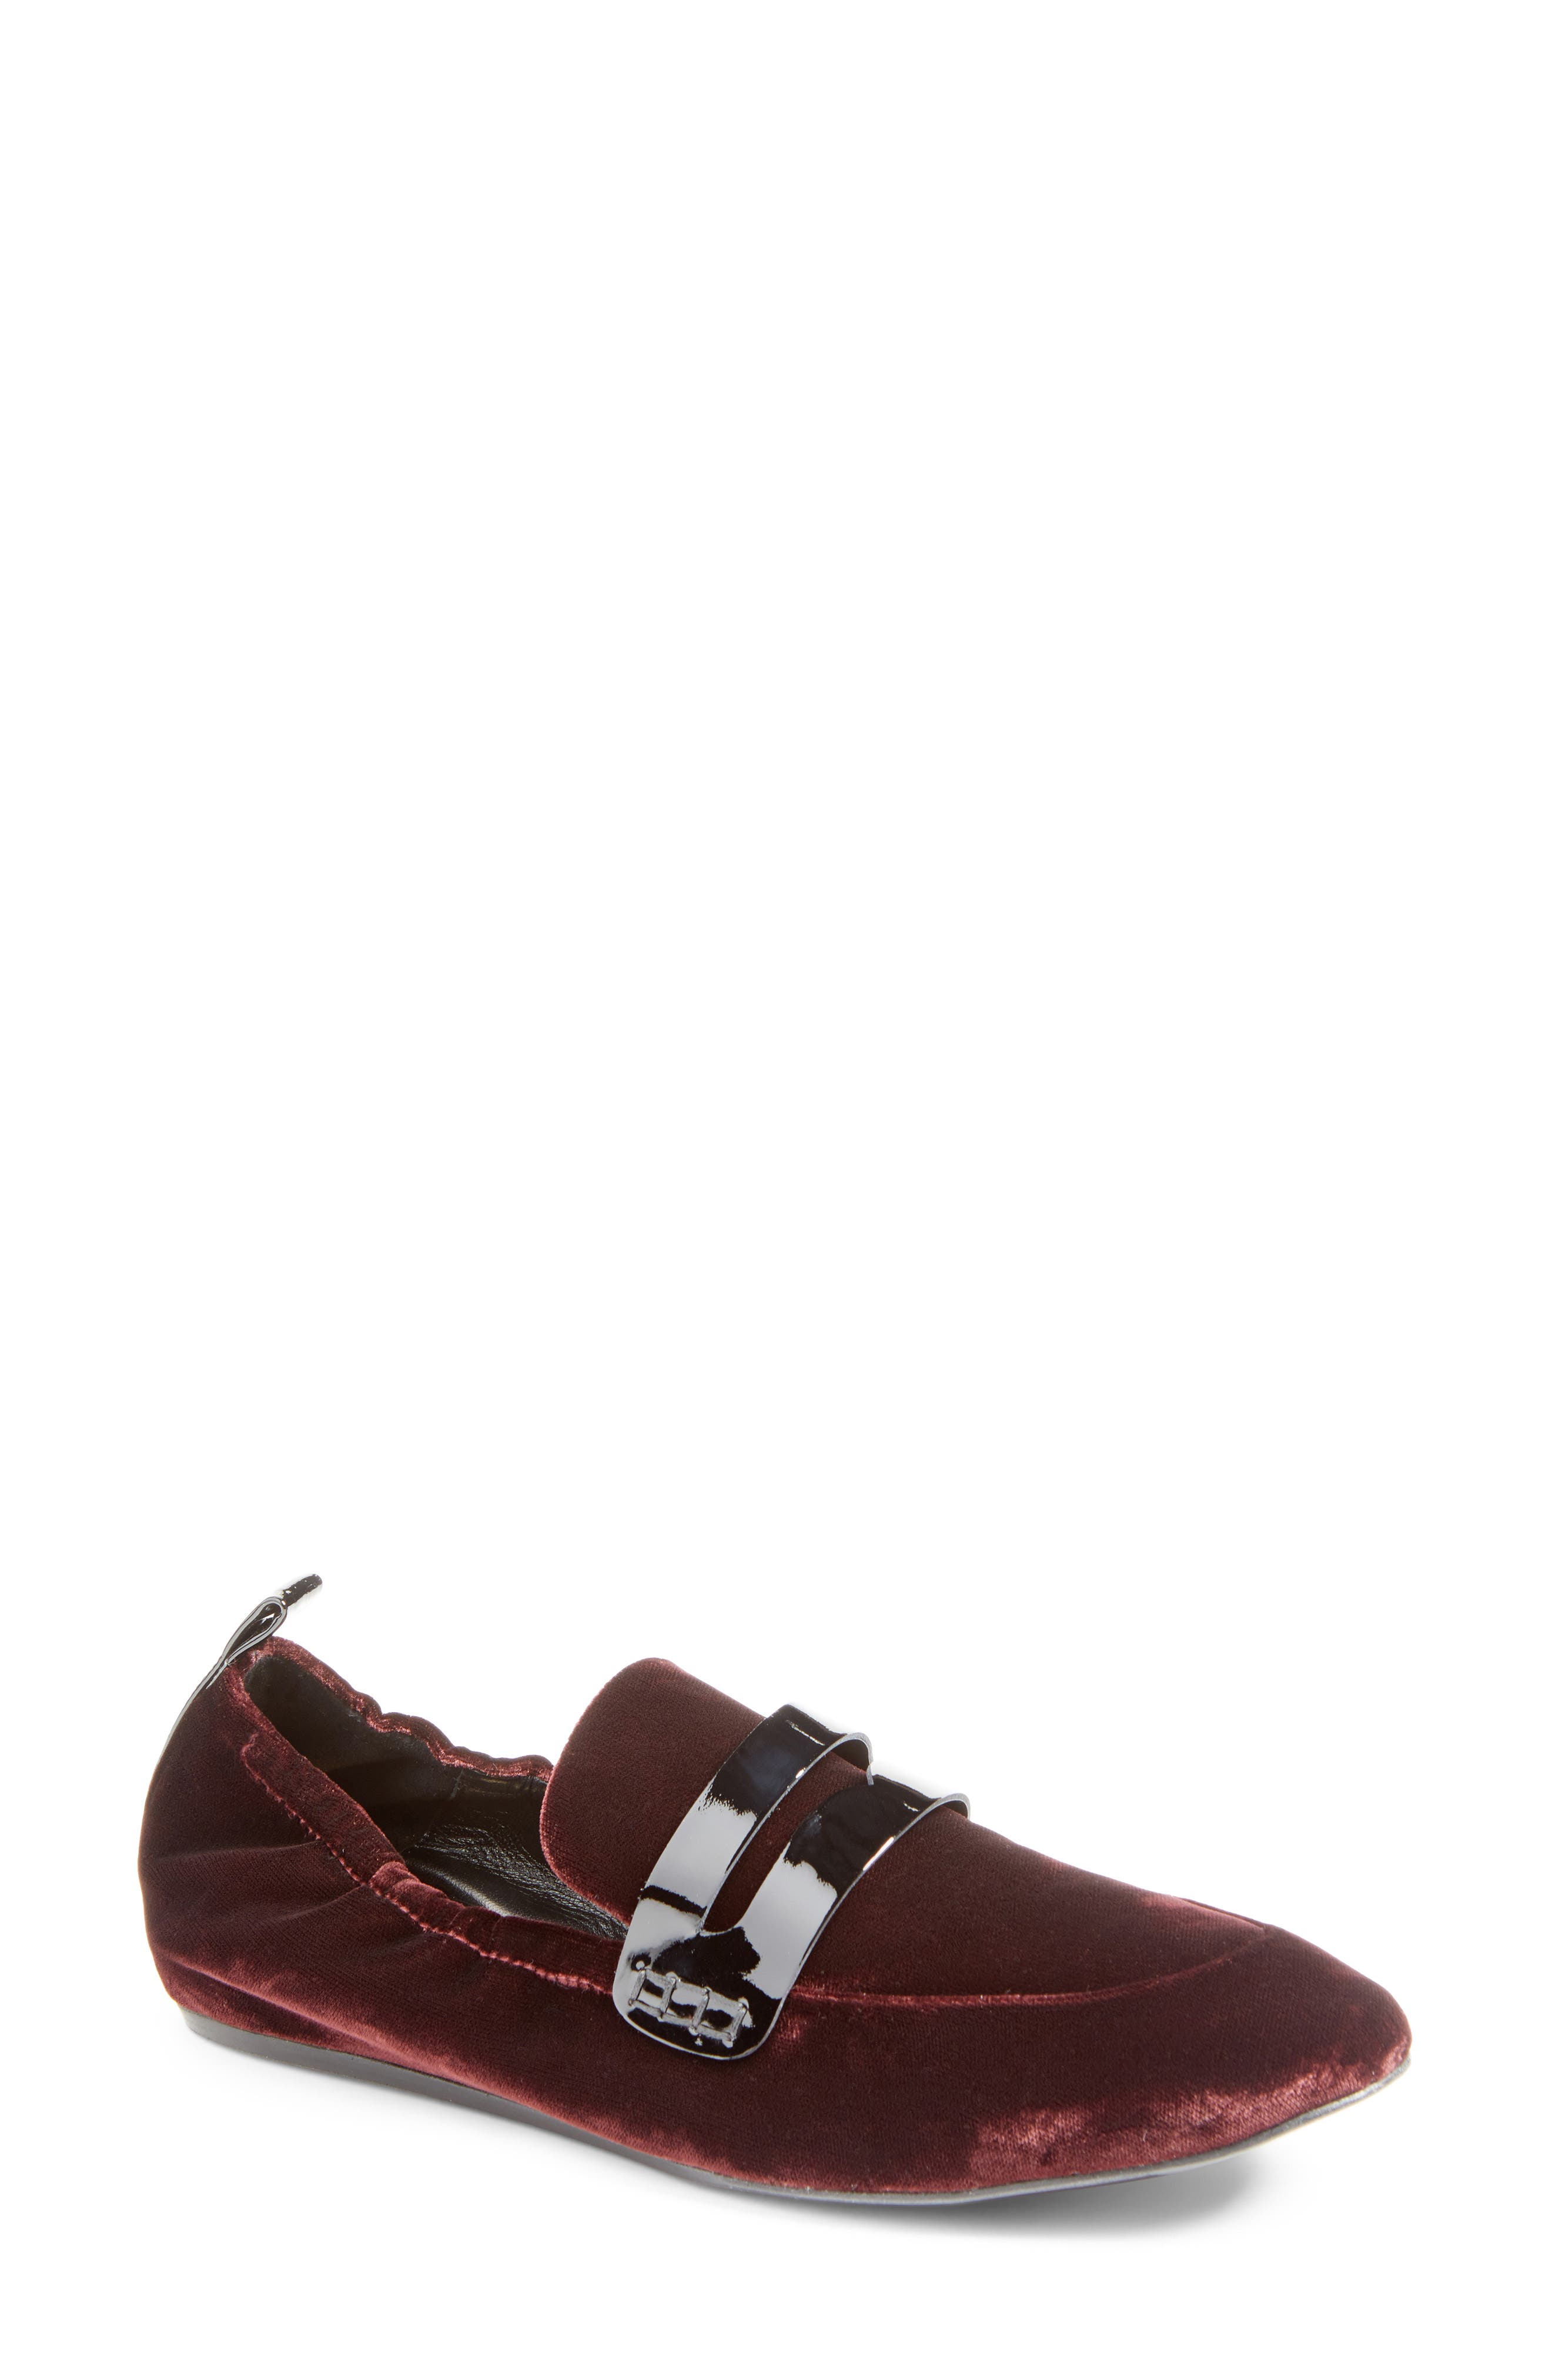 Lanvin Slipper Loafer (Women)